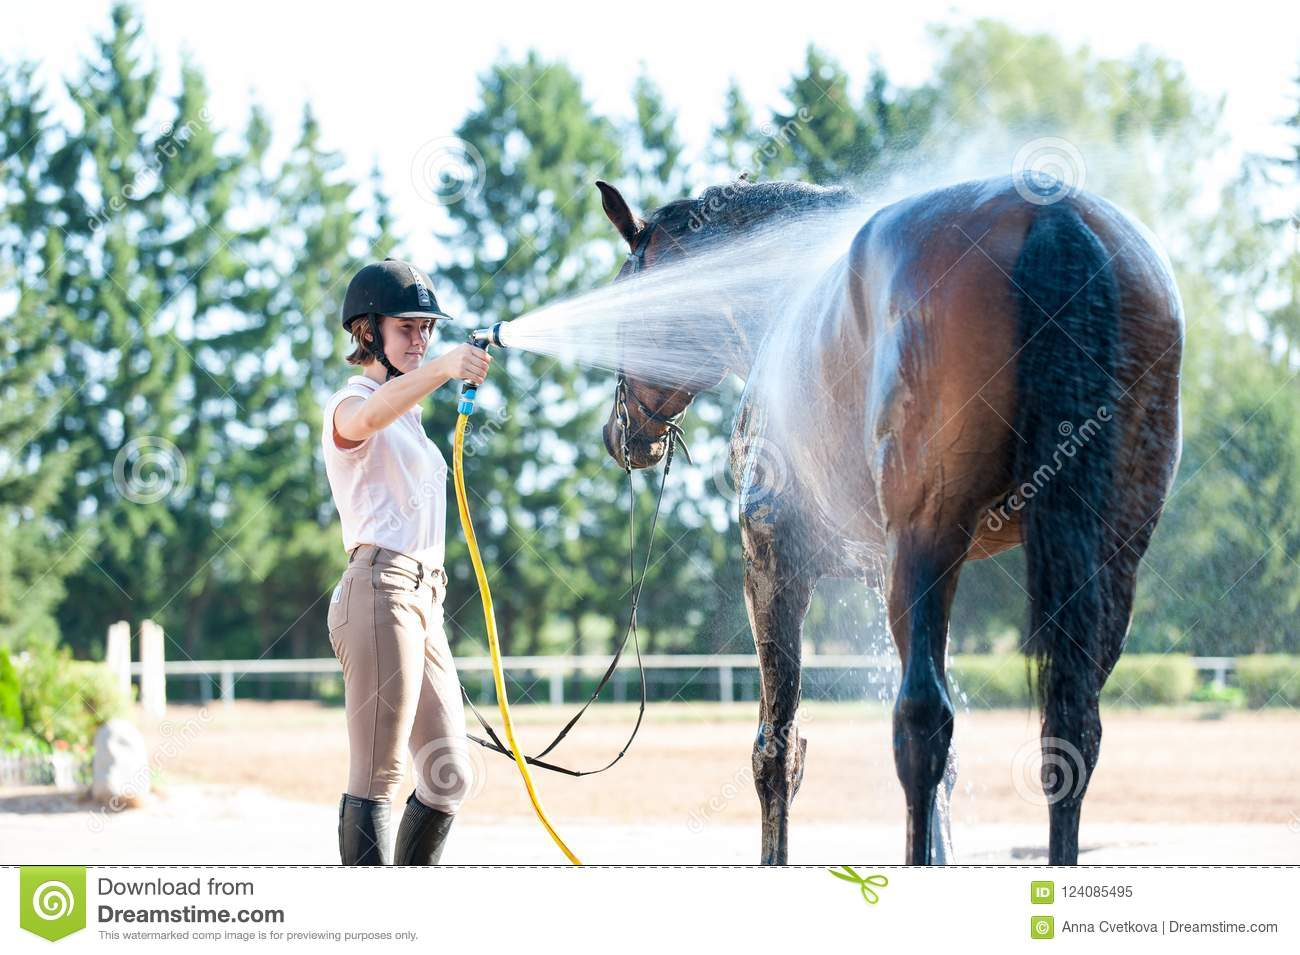 Horse Shower Stock Photos - Download 296 Images